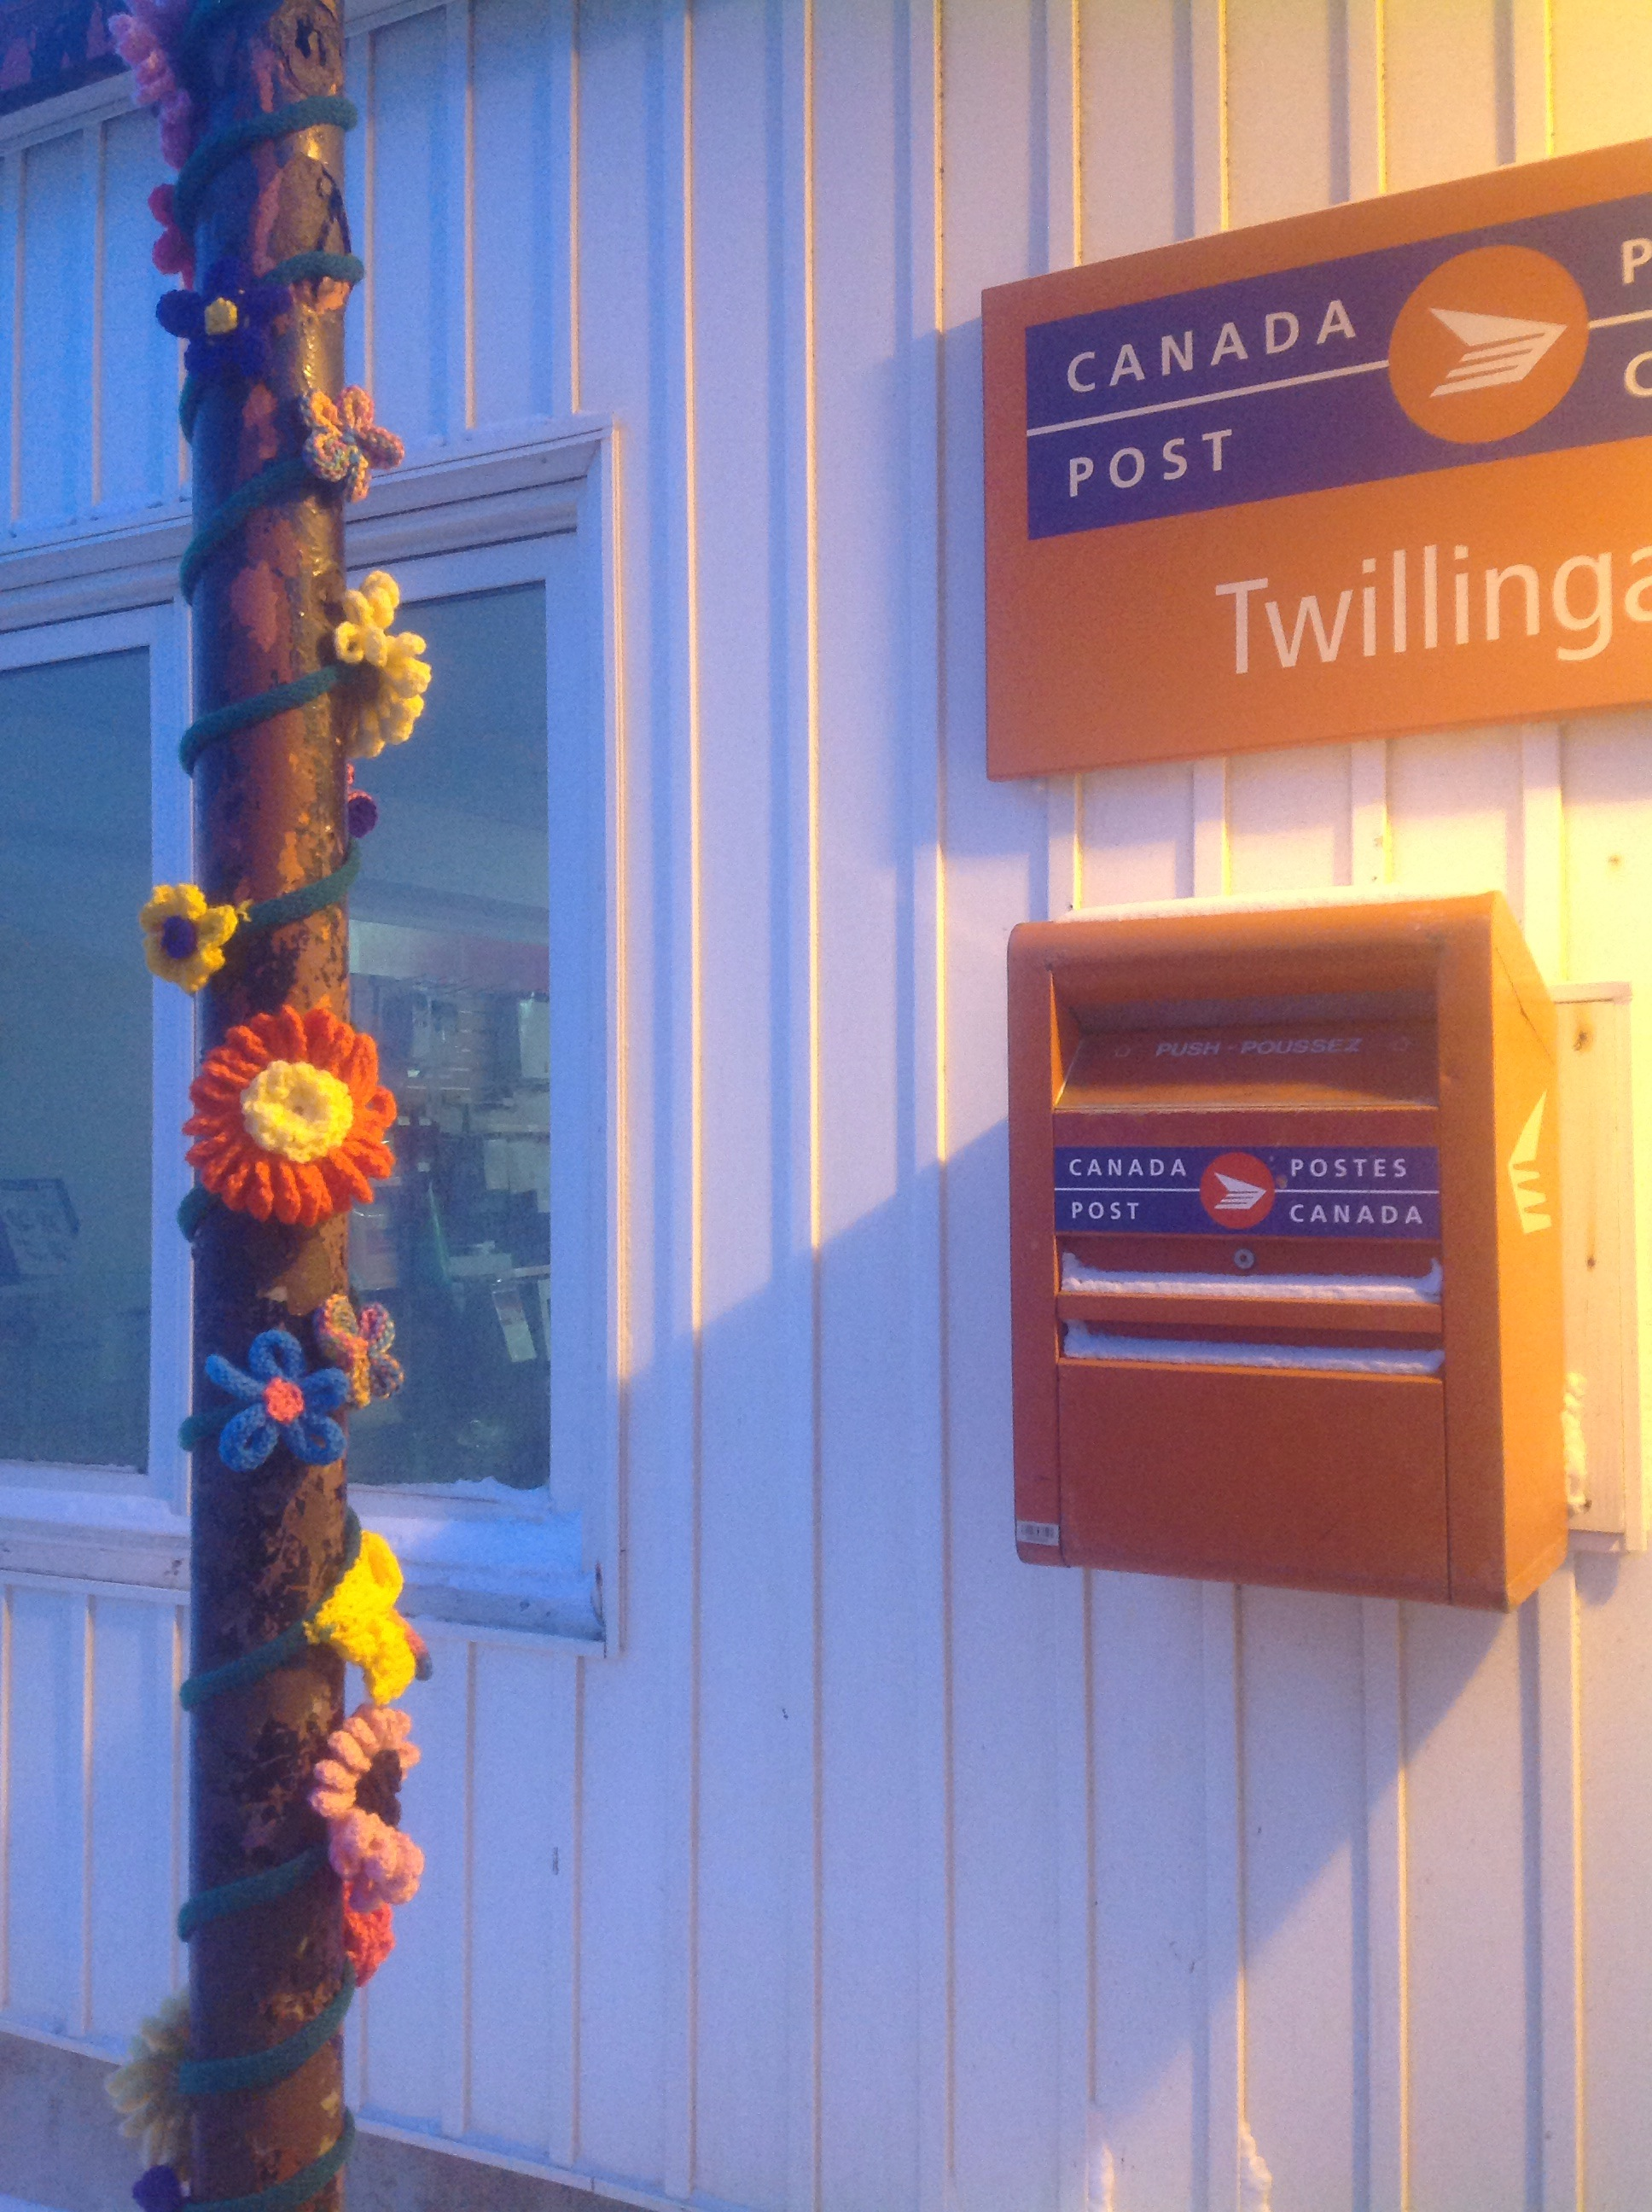 The final installed yarn bomb: D'vine in front of Twillingate Post Office